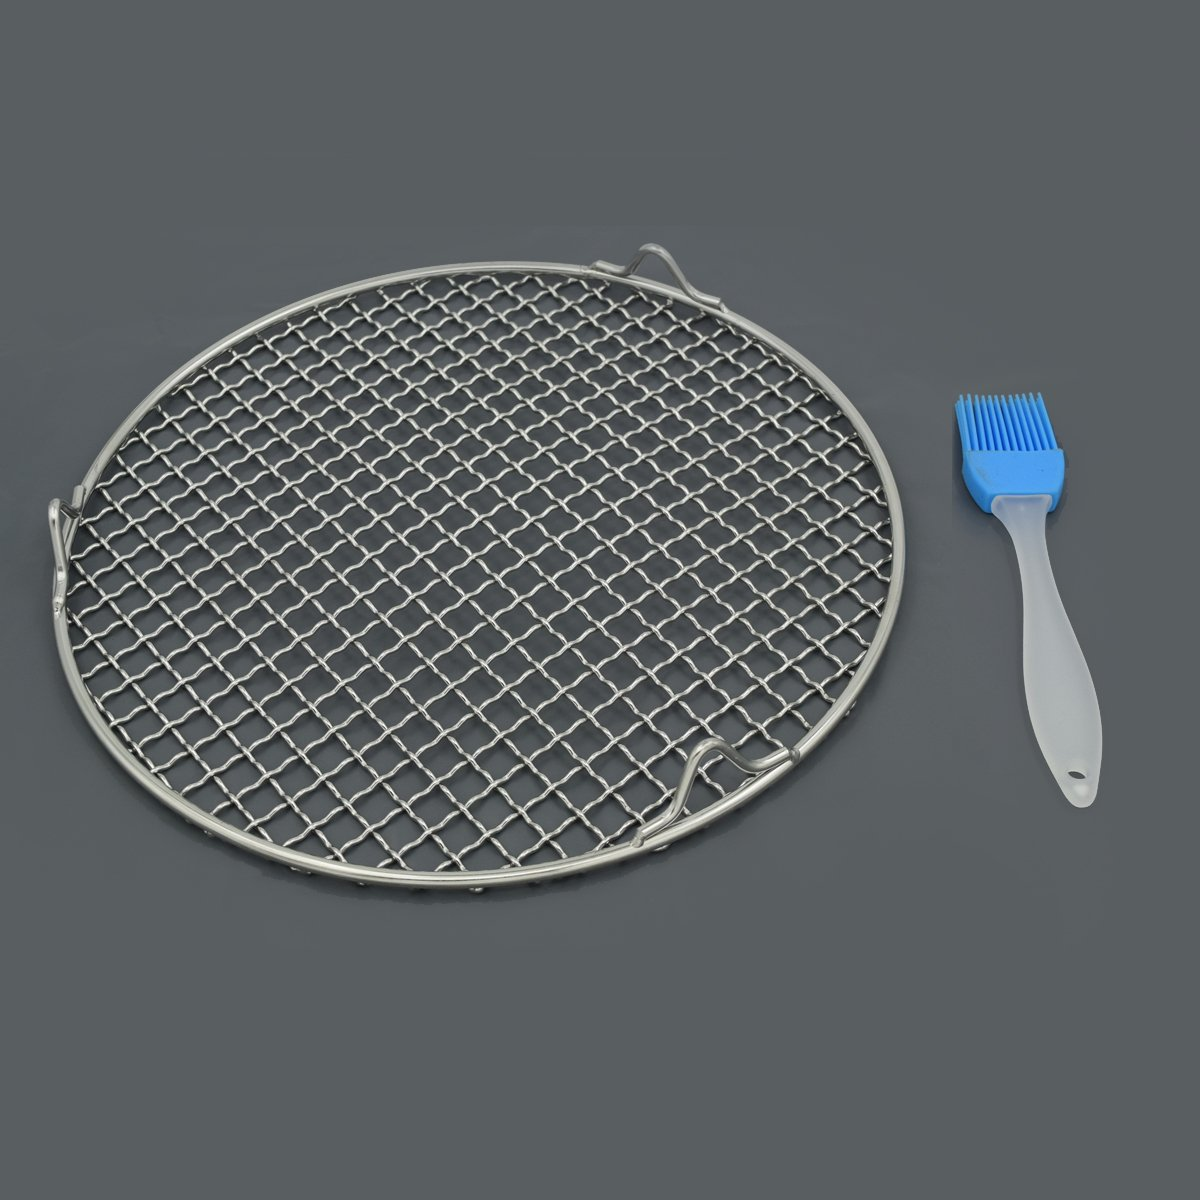 Fivebop Multi-Purpose Stainless Steel Cross Wire Round Steaming Cooling Barbecue Racks/Carbon Baking Net/Grills/Pan Grate with 3 Legs (11 inches) by Fivebop (Image #7)